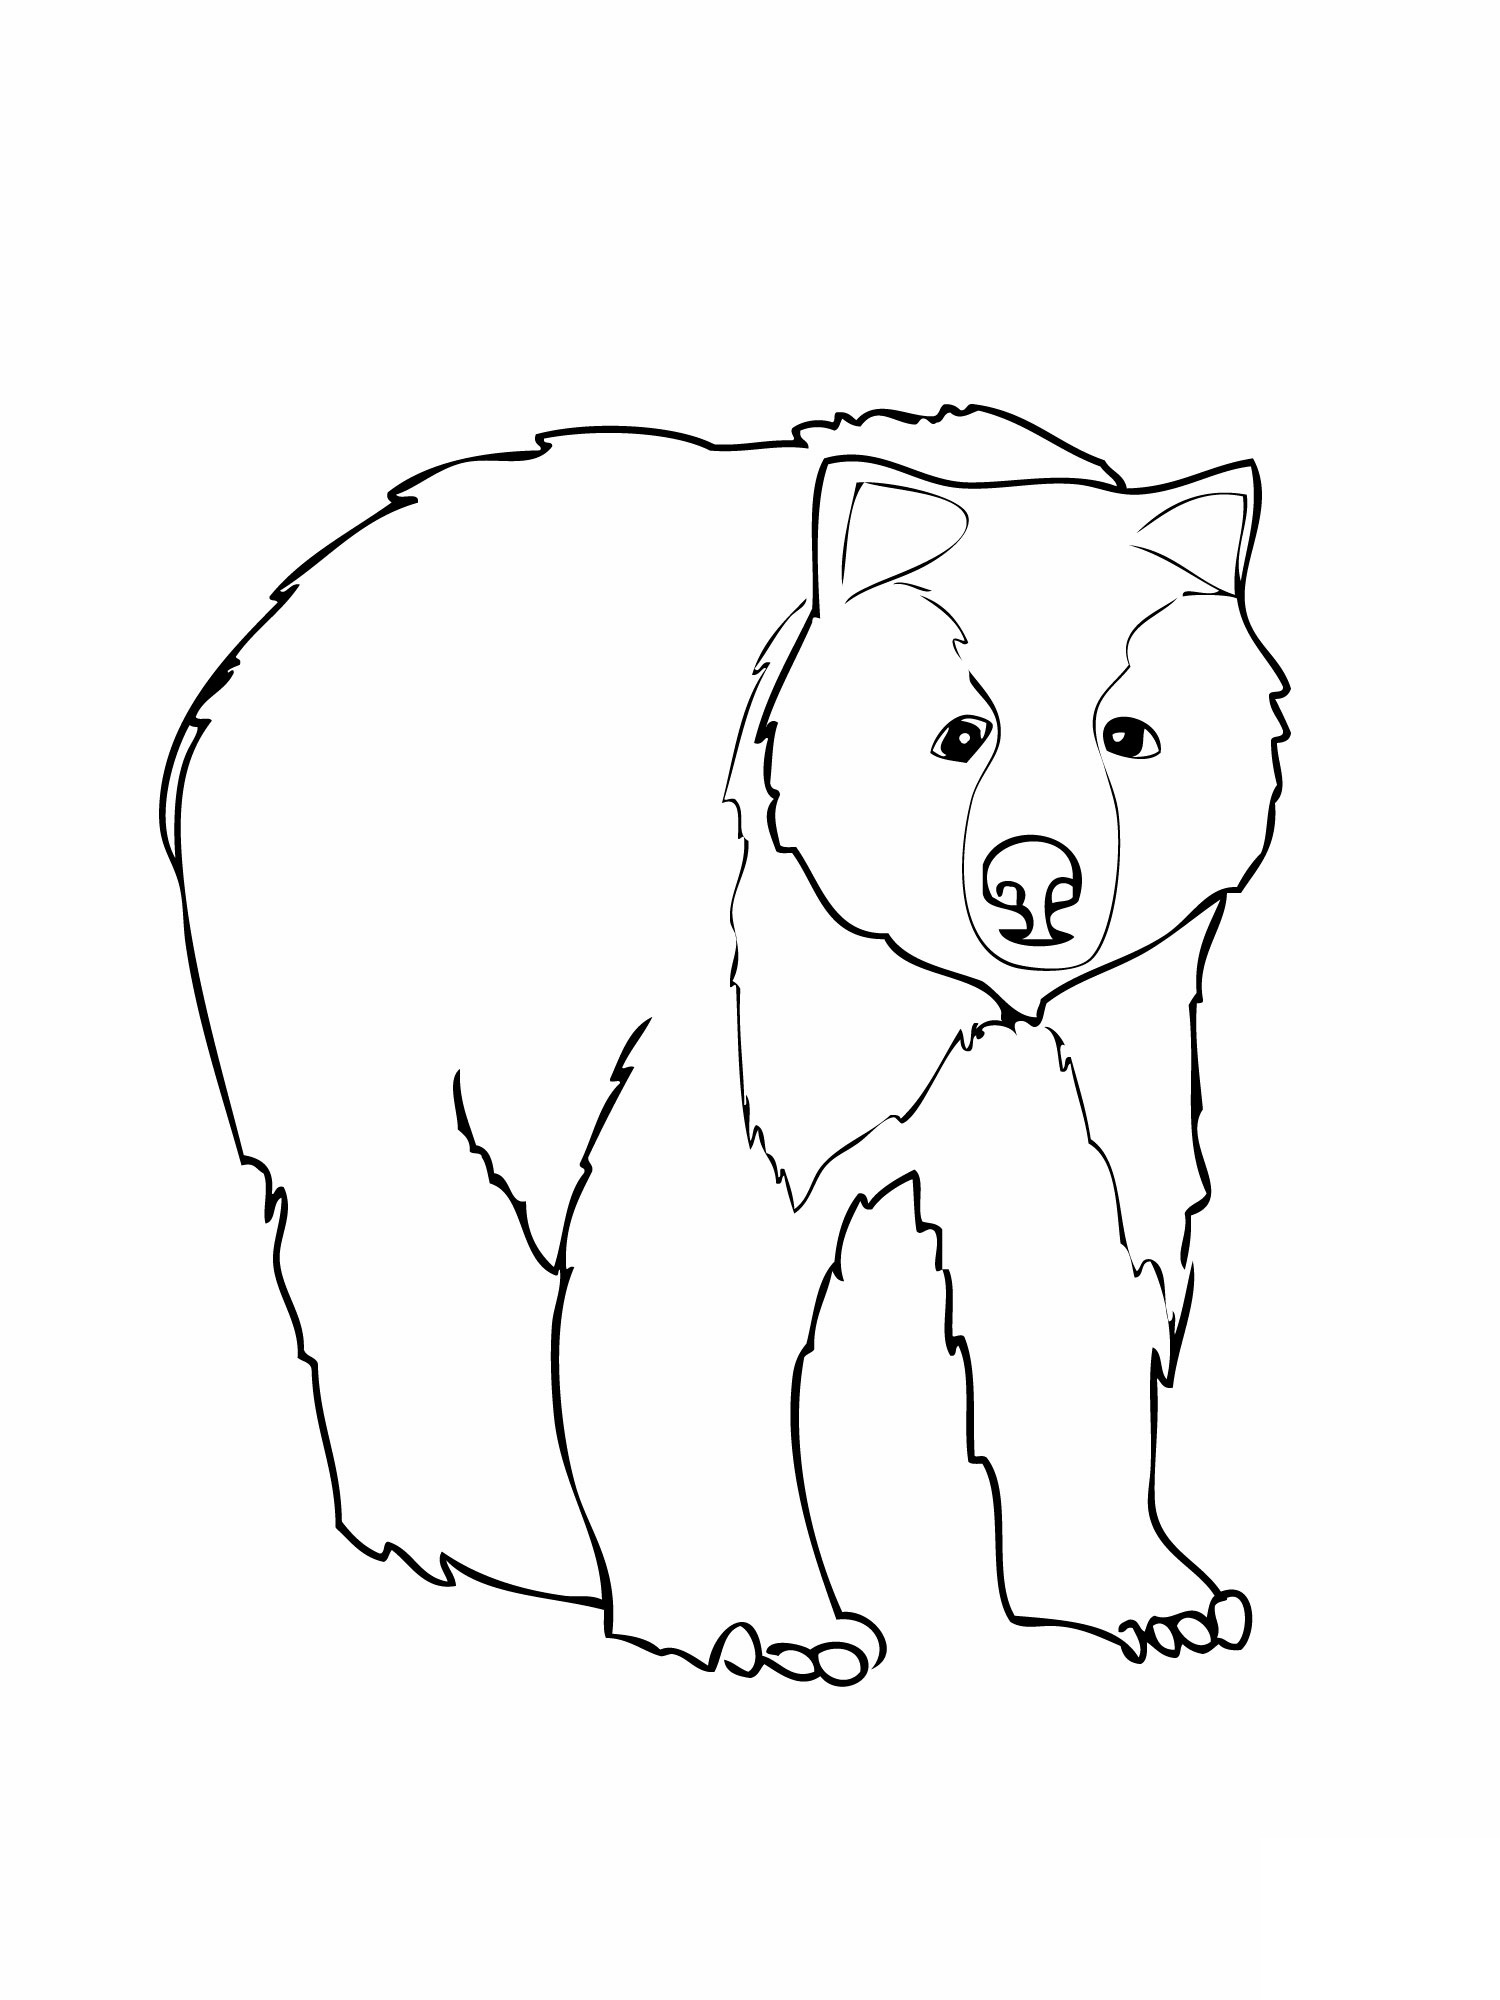 coloring picture bear free bear coloring pages bear coloring picture